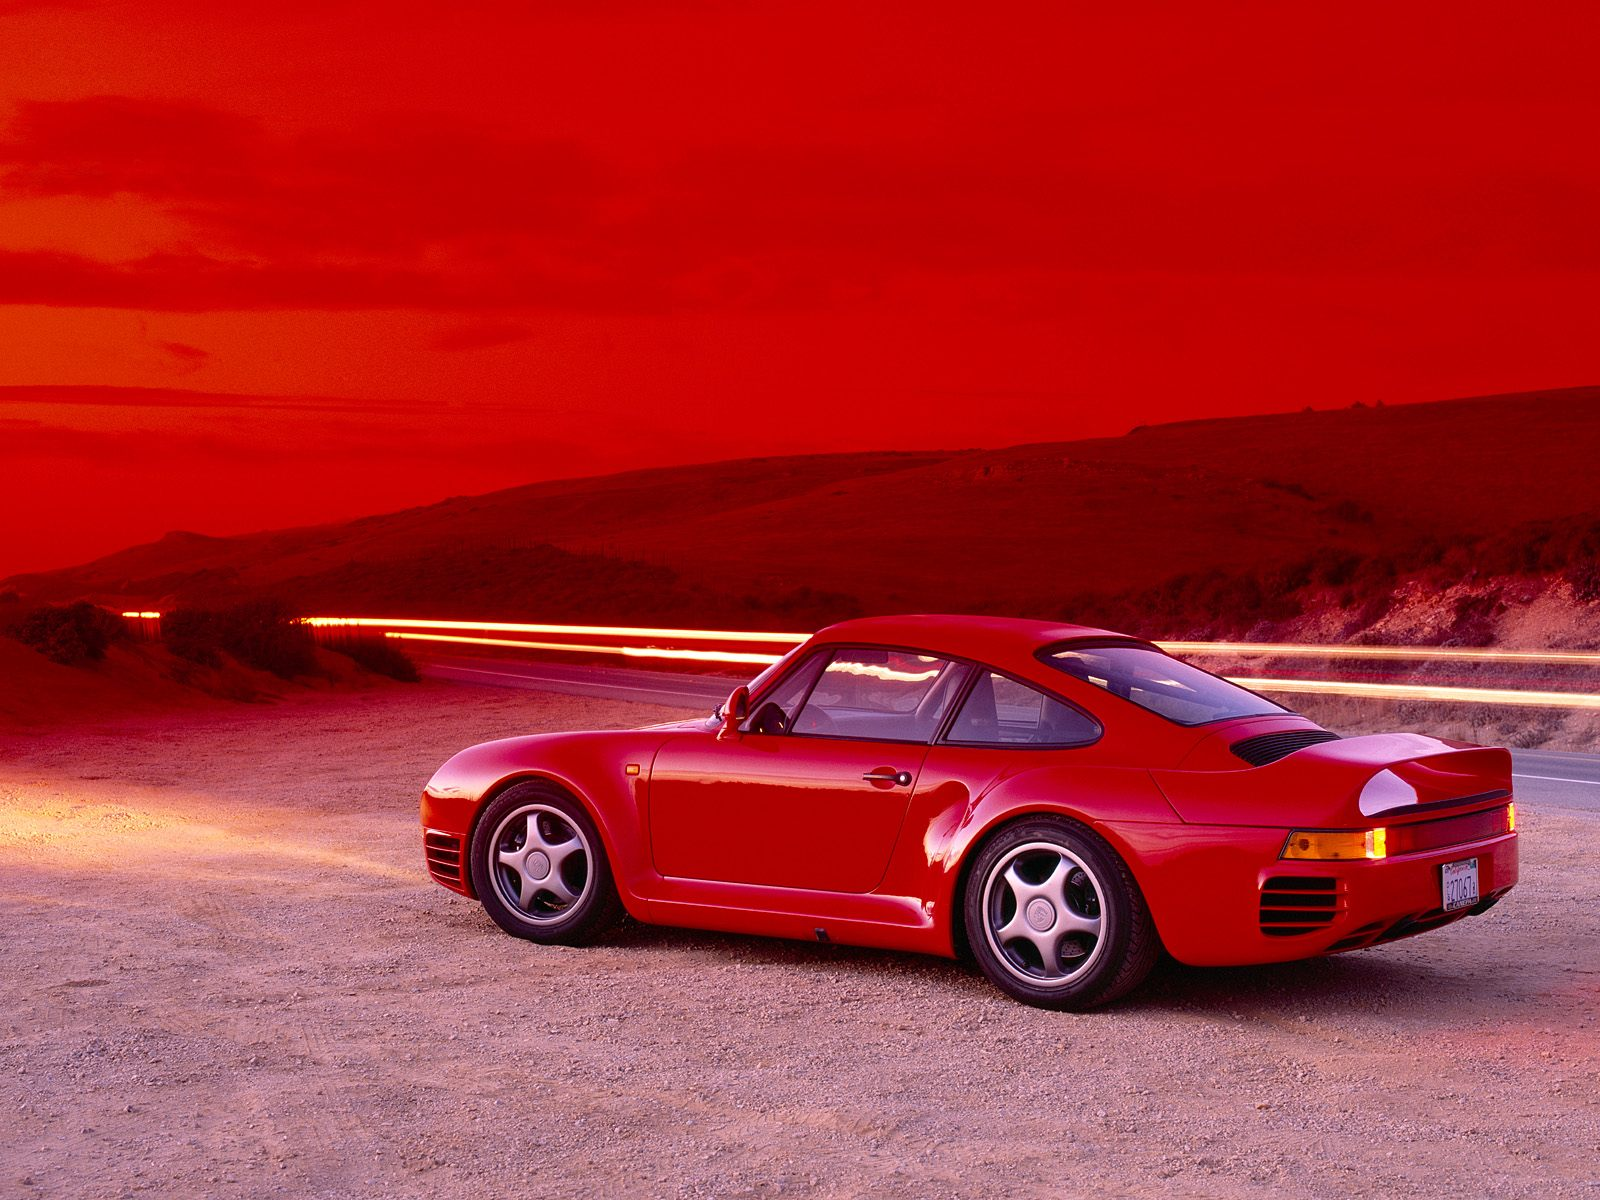 1980s Cars: Definitive Cars Of The 1980's